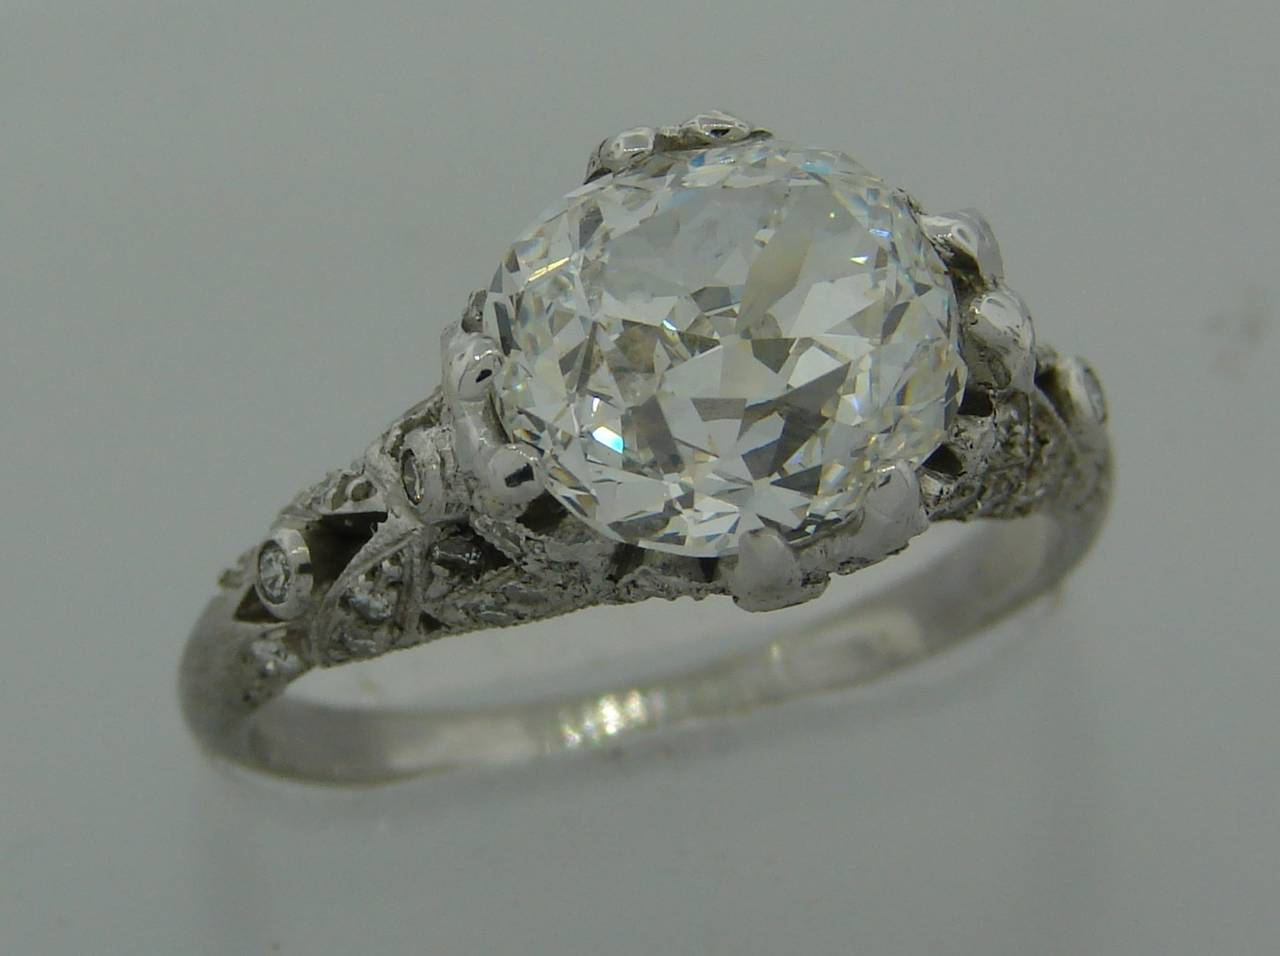 3.02 Carat GIA Cert Cushion Cut Diamond Platinum Engagement Ring circa 1920s 3